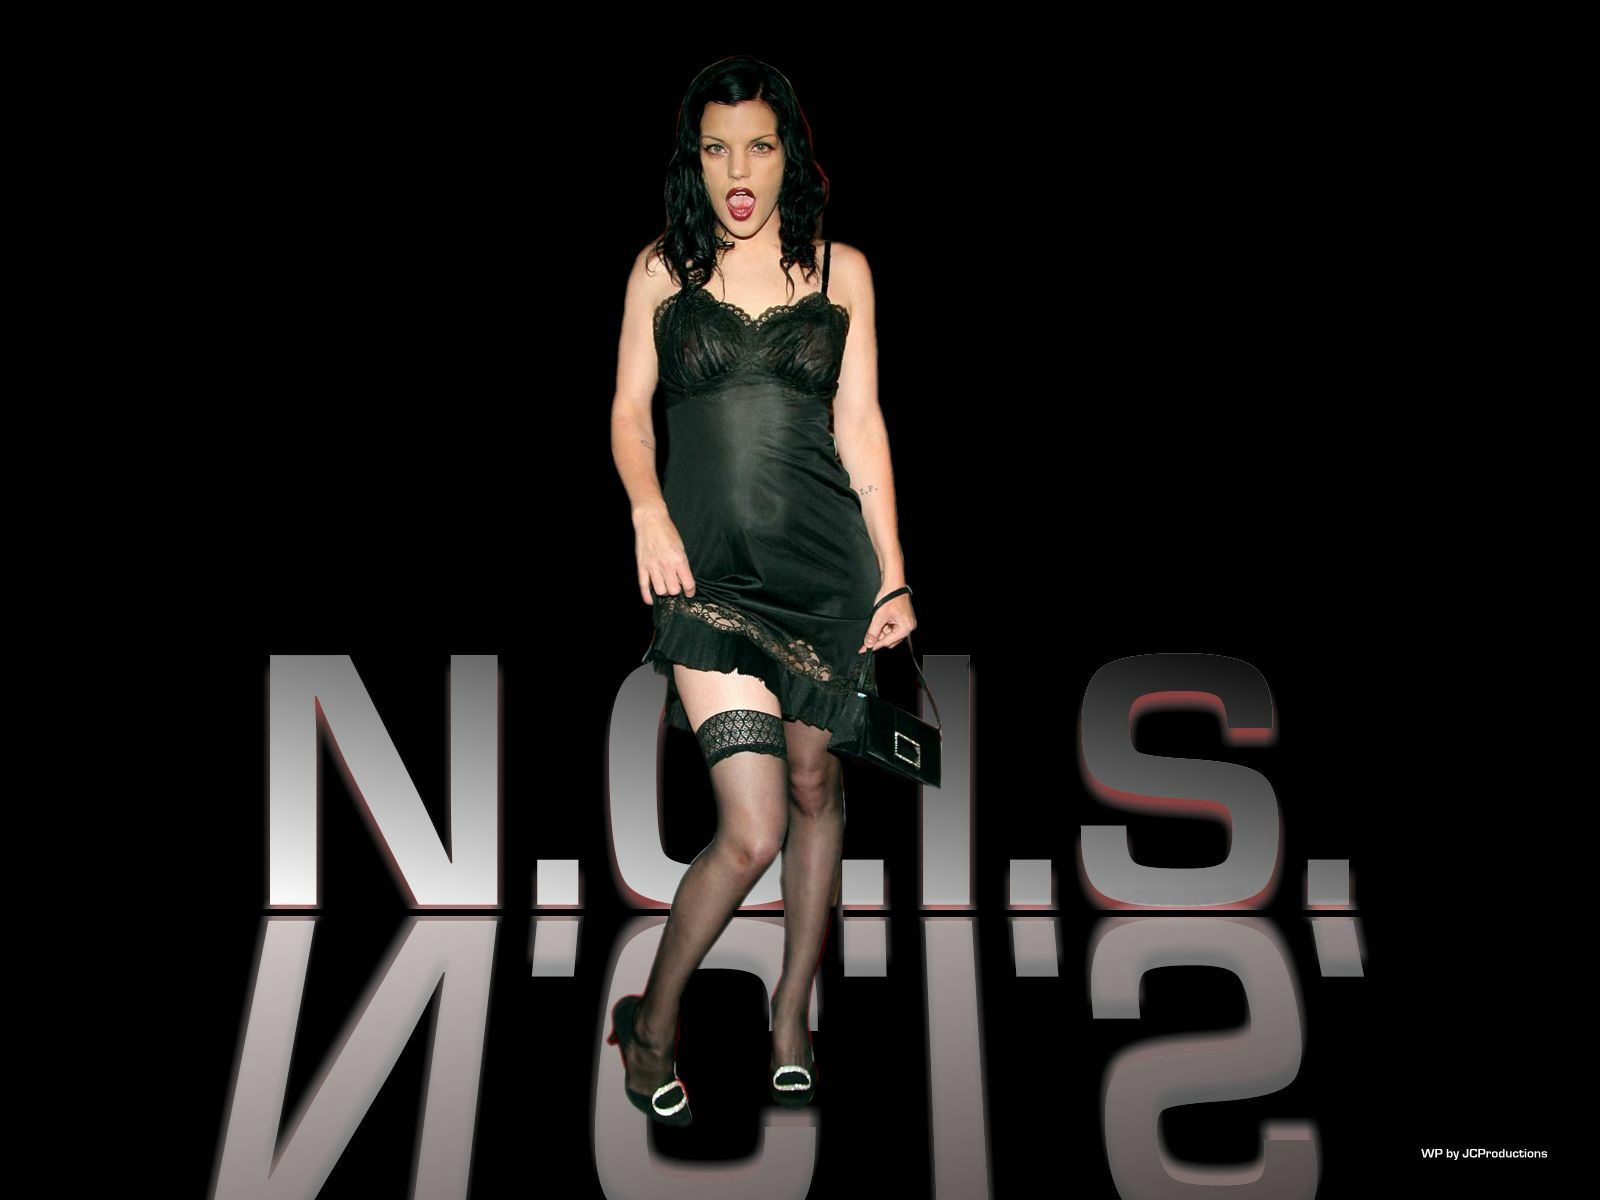 Final, sorry, pauley perrette abby sciuto curious